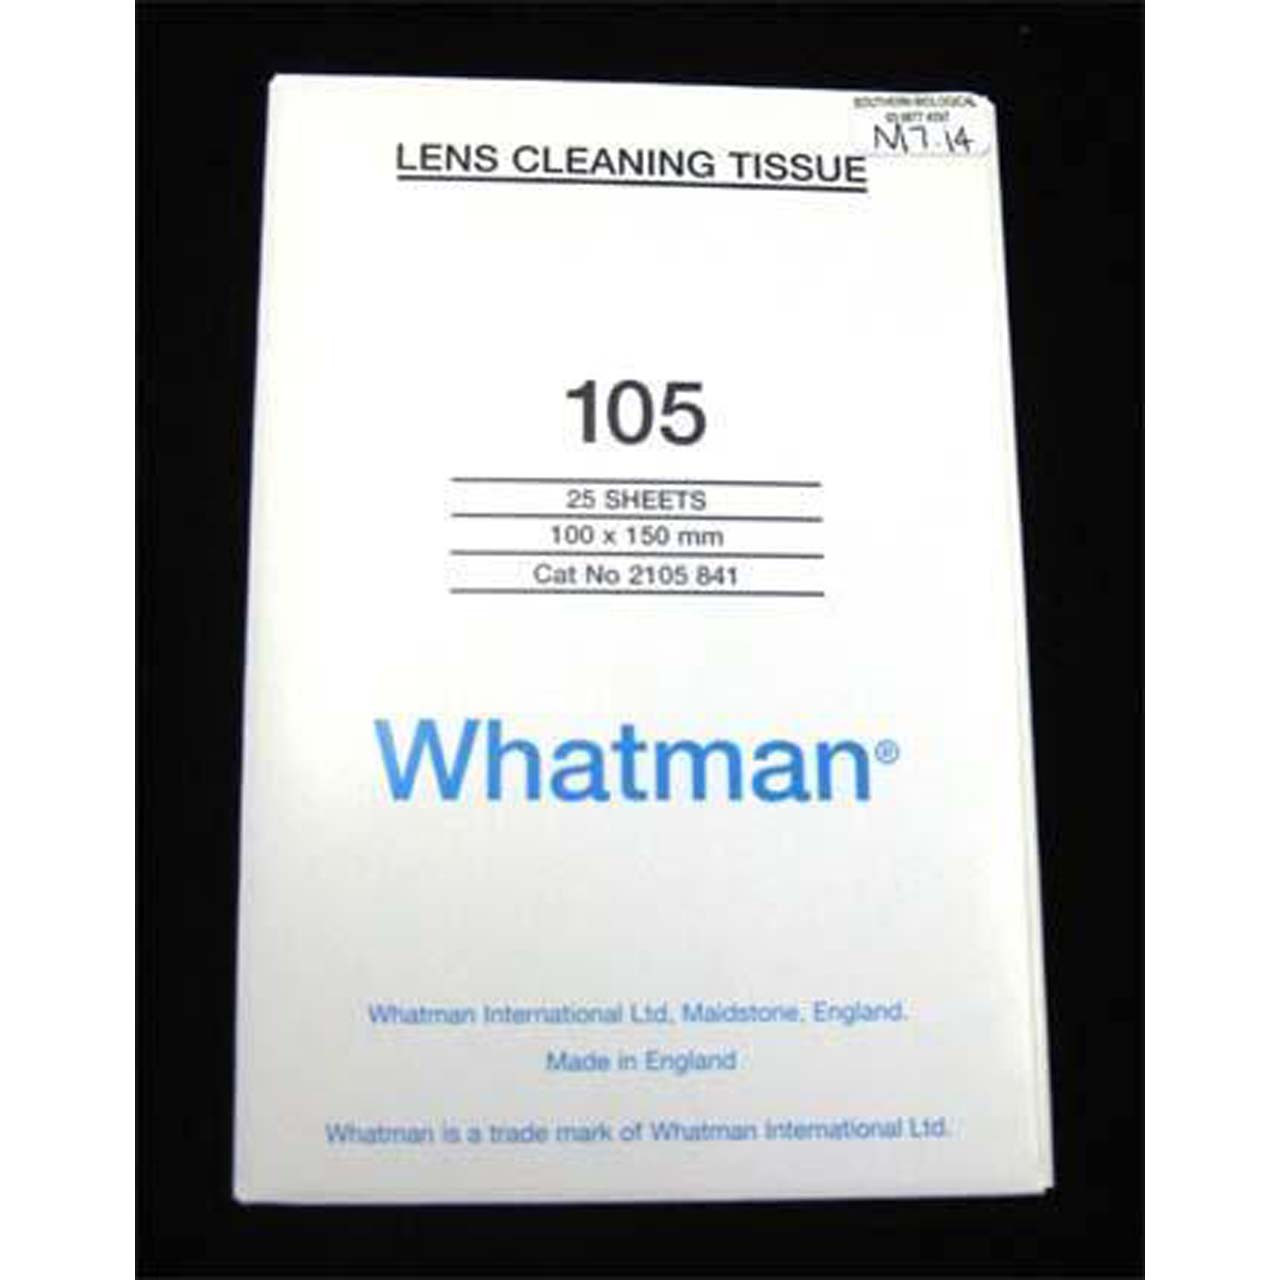 M7.14 - Lens tissue, 100 x 150mm, 25 sheets